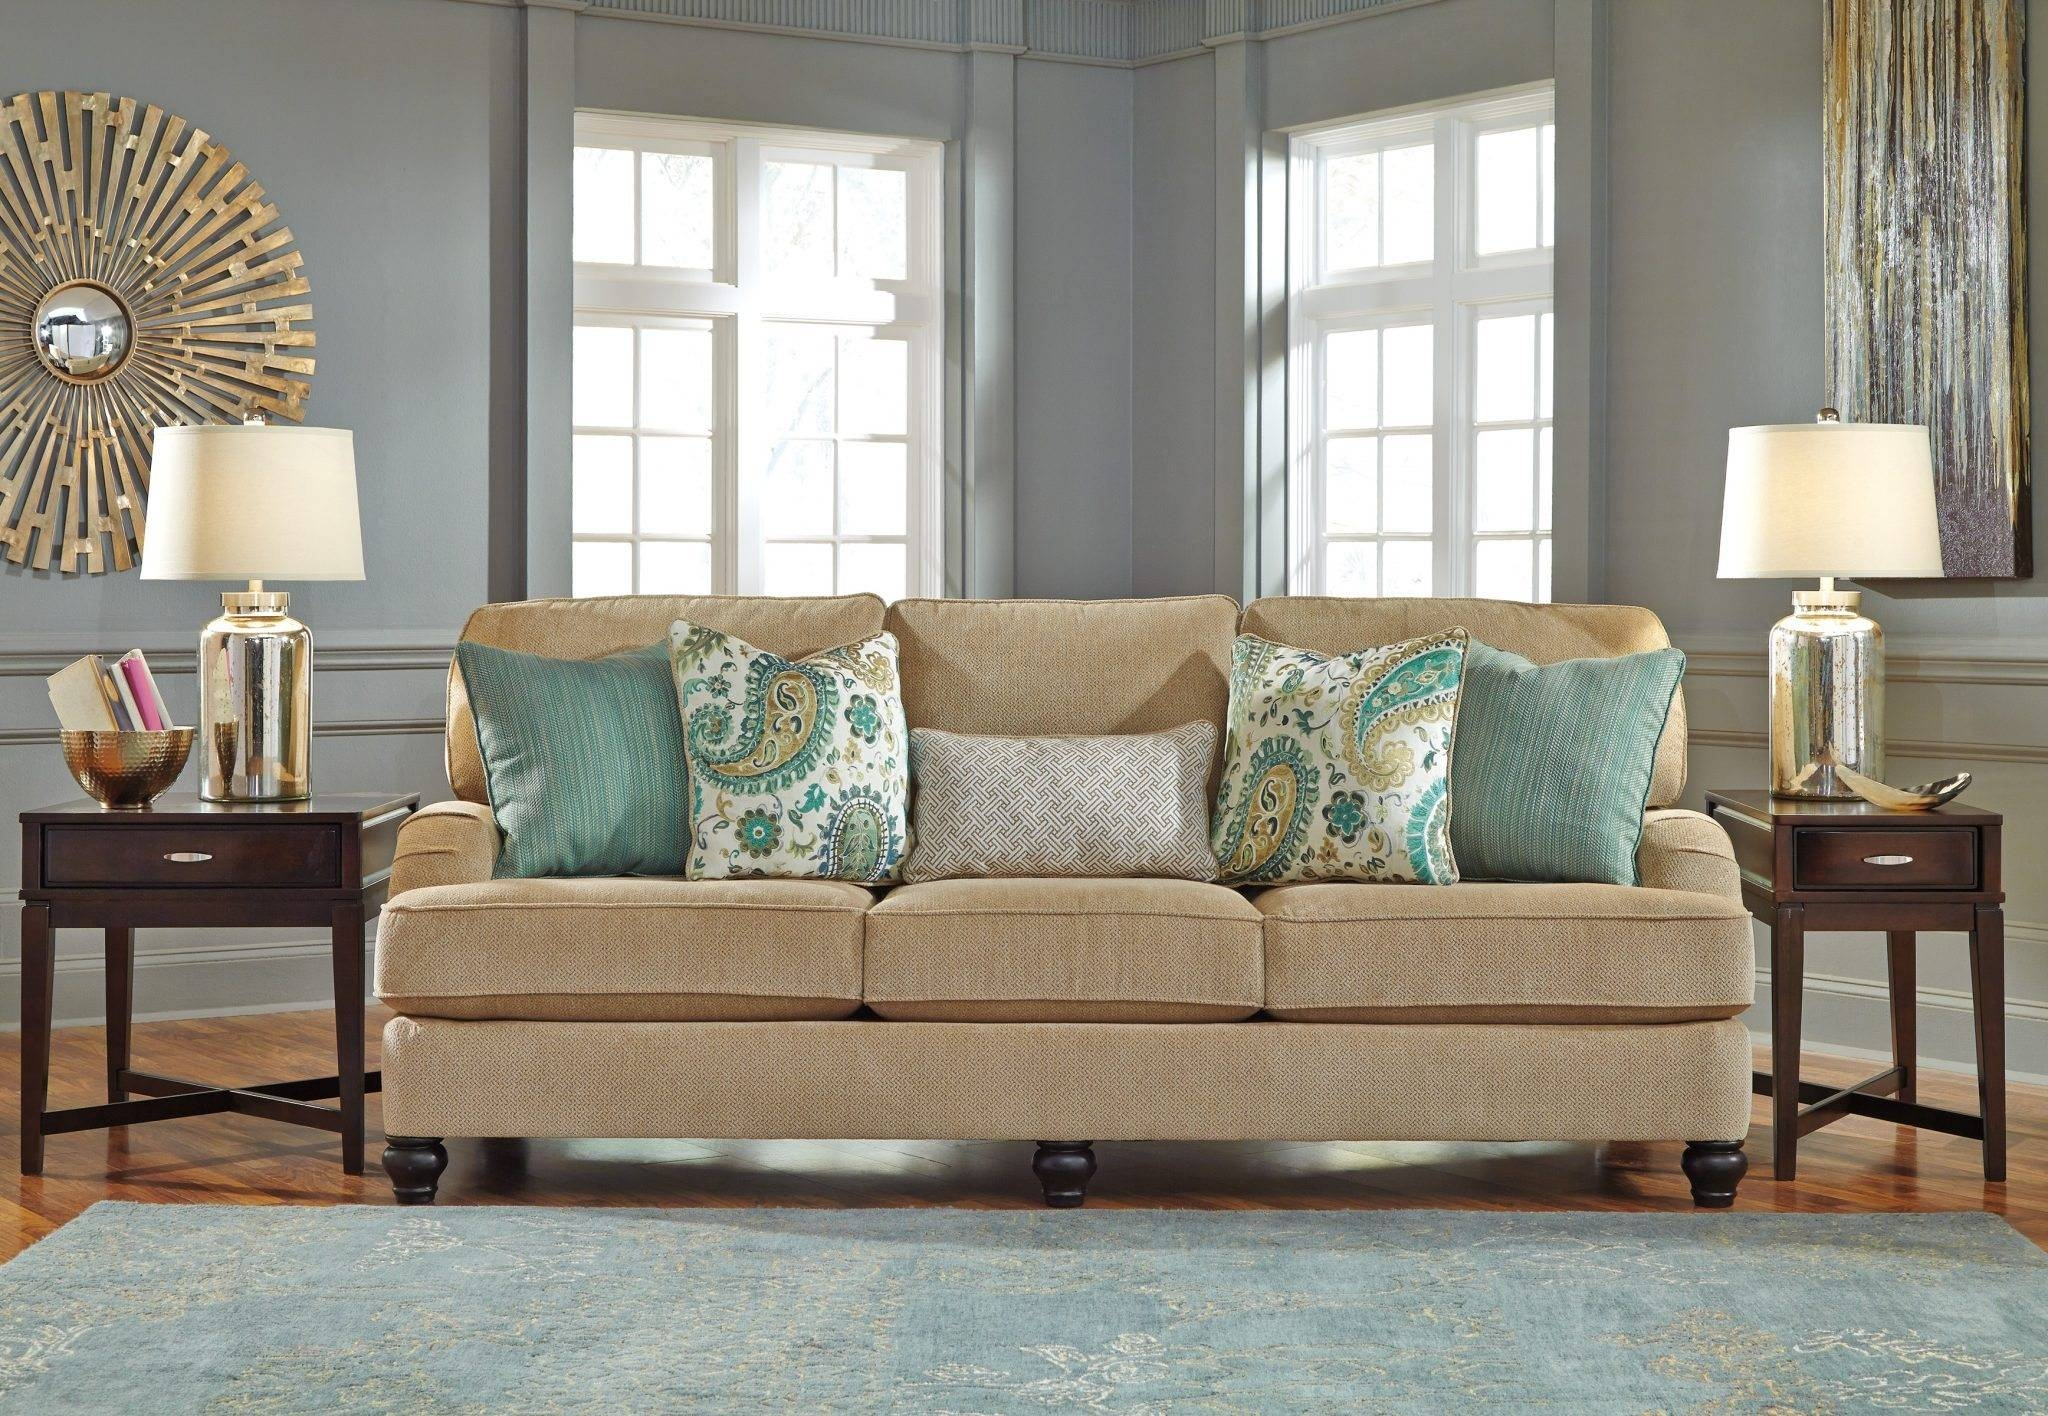 Best Furniture Mentor Oh: Furniture Store – Ashley Furniture Within Ashley Tufted Sofa (Image 14 of 30)